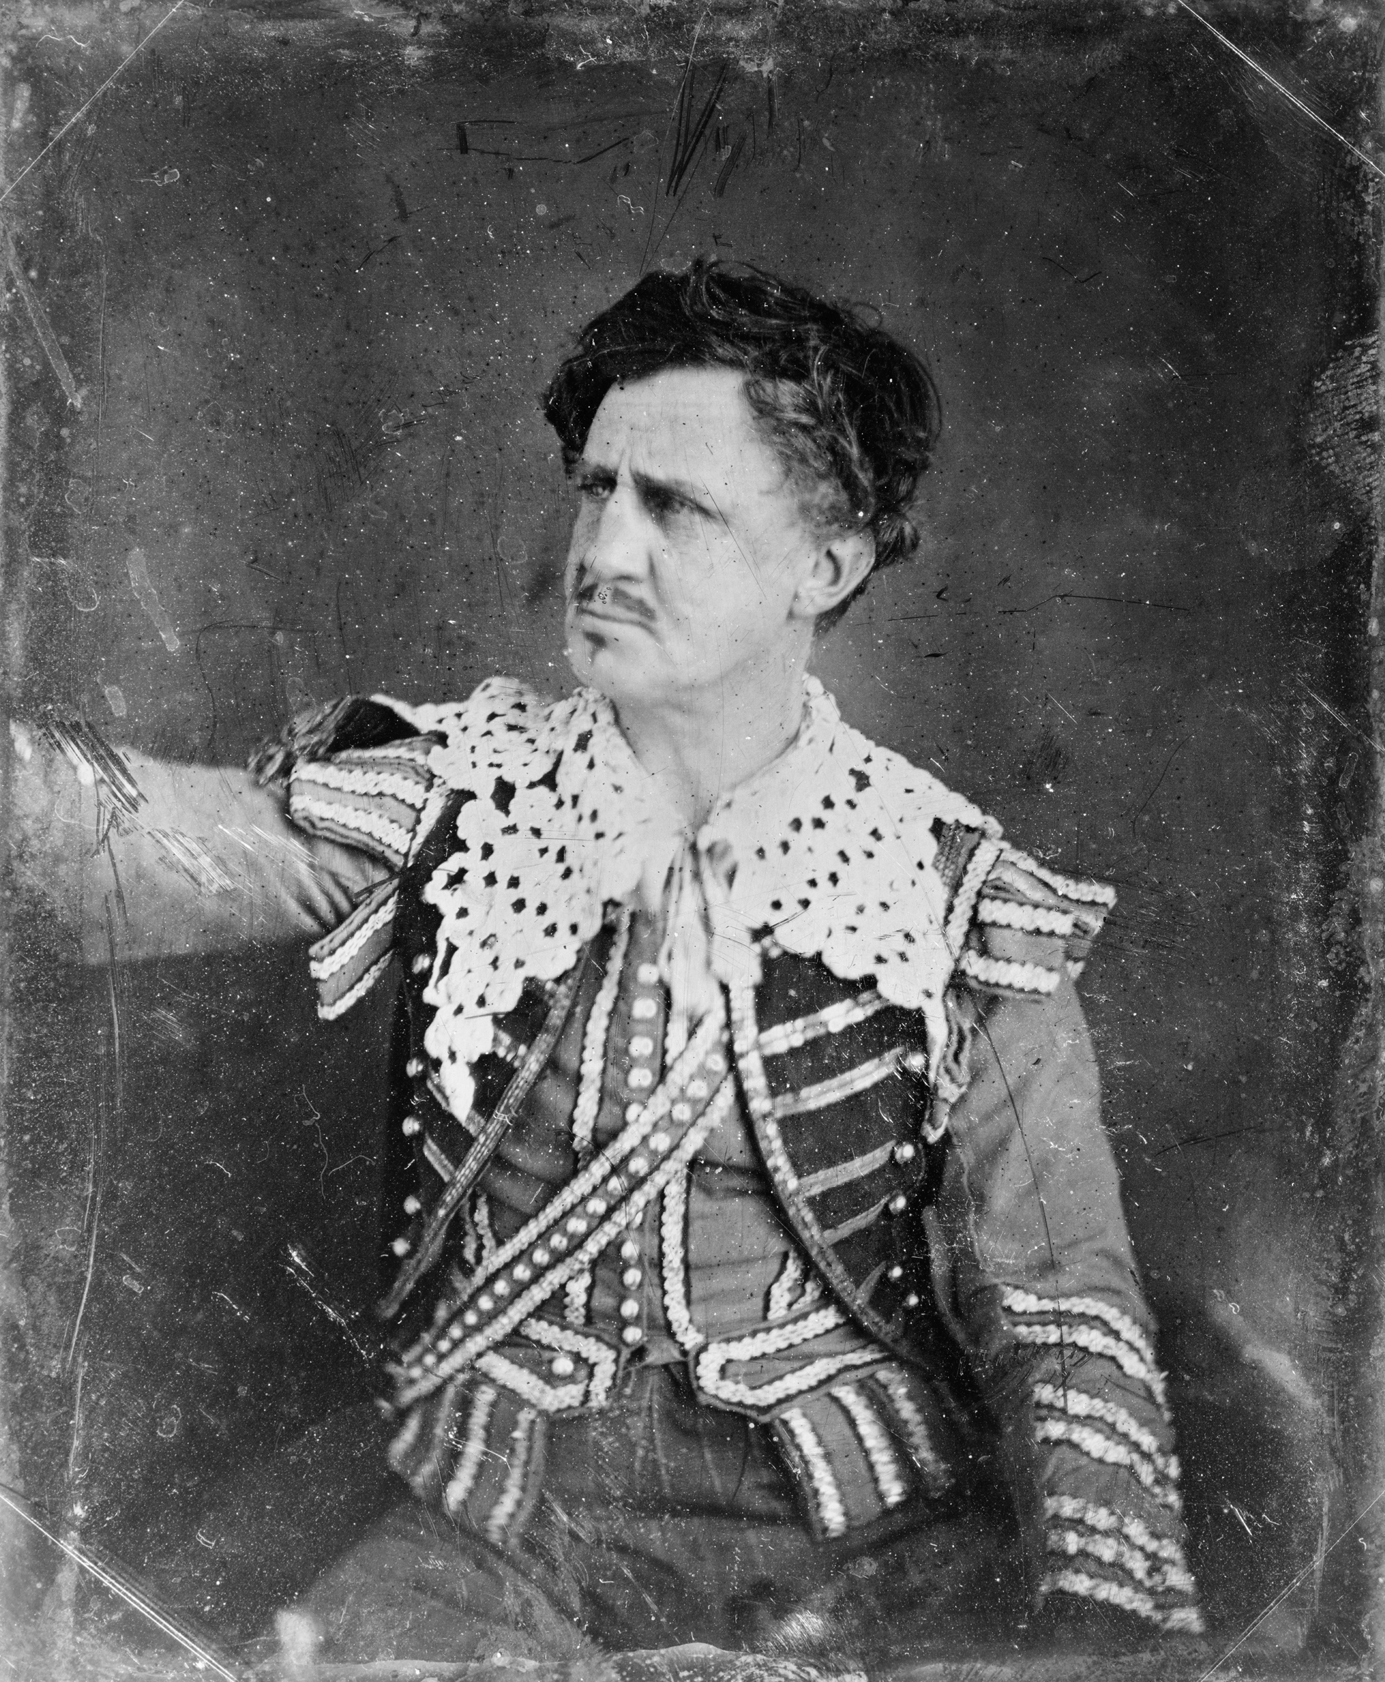 Junius Brutus Booth in an undated photo